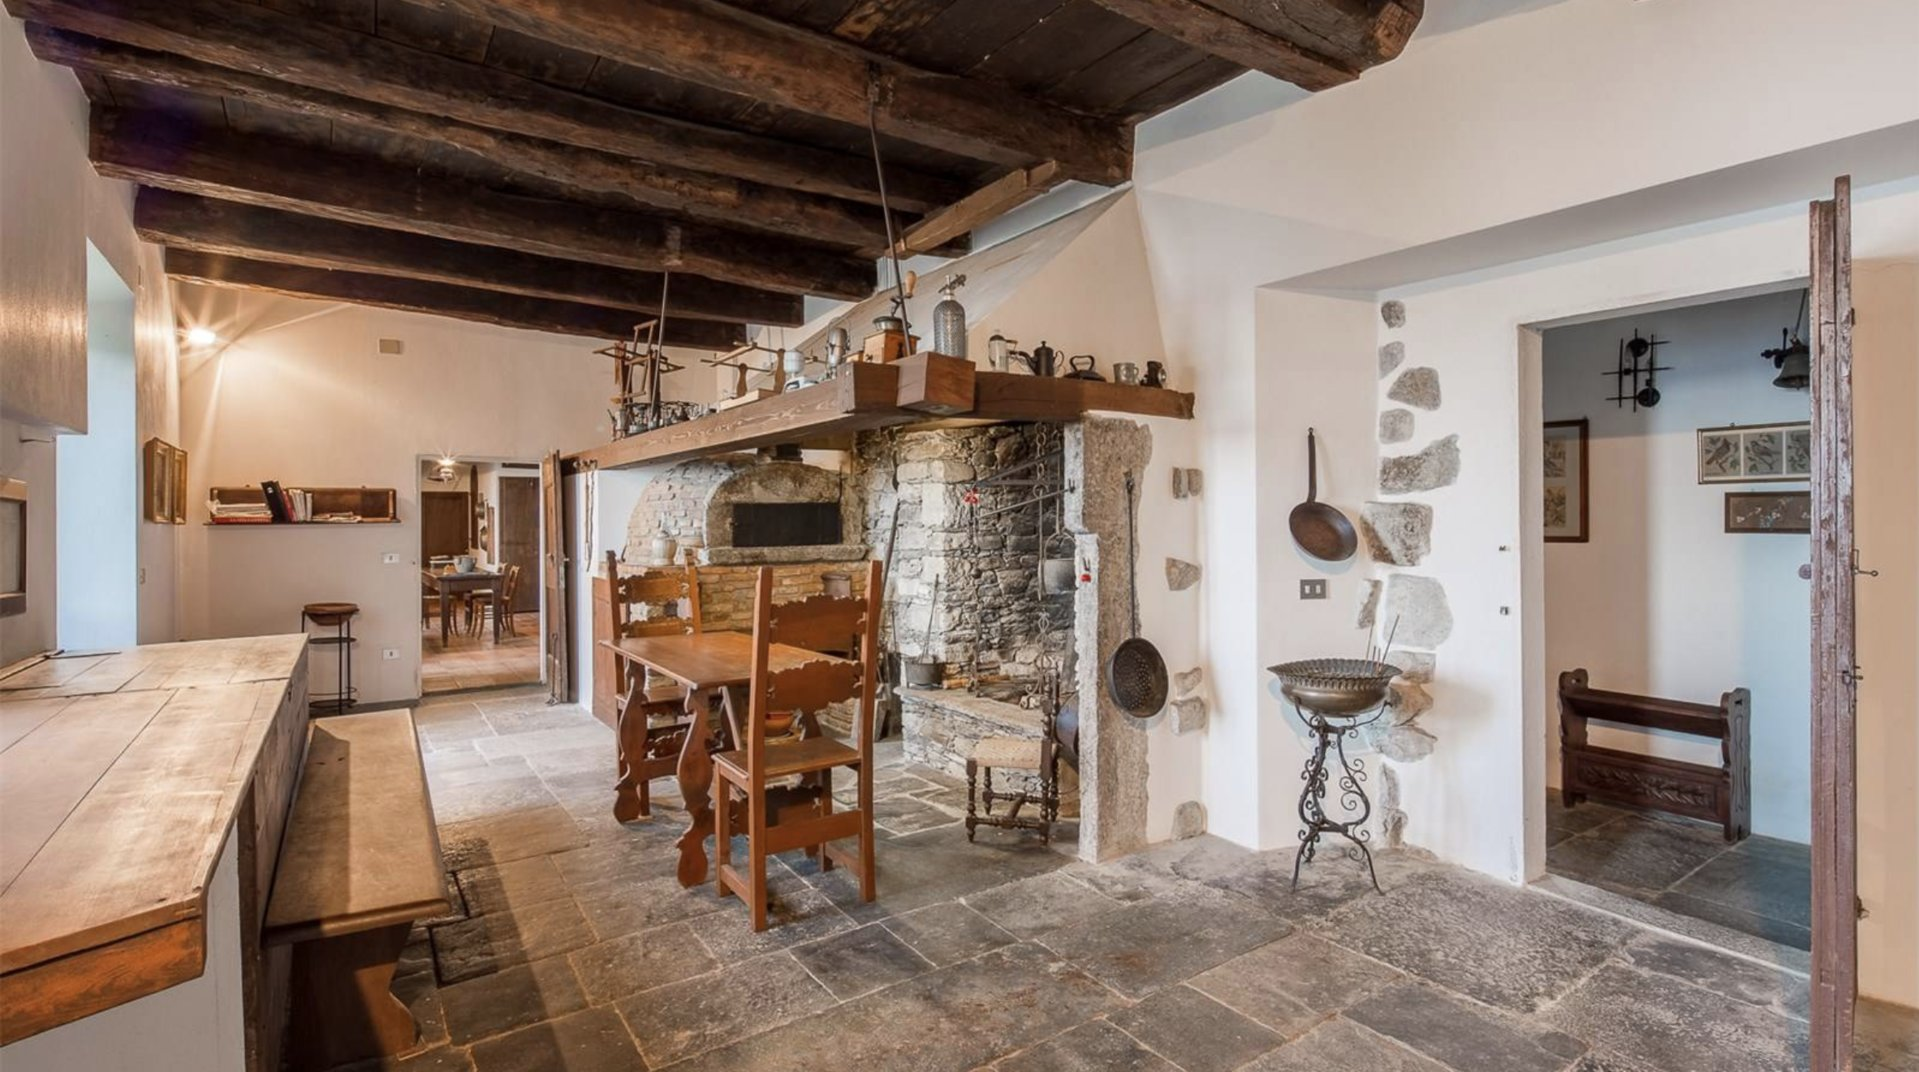 Historic property former convent for sale in Orta - ceiling with exposed beams